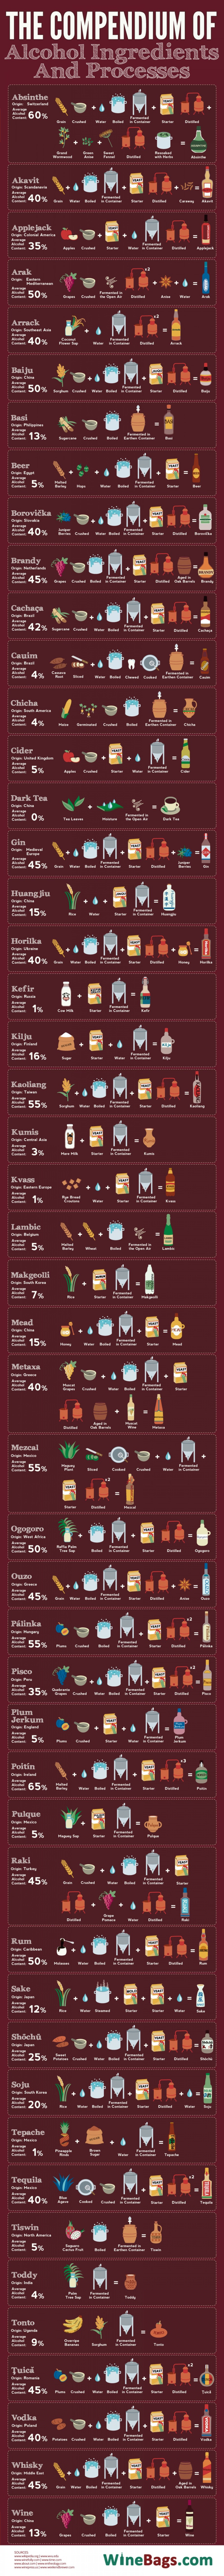 the-compendium-of-alcohol-ingredients-and-processes_54d93891e23fd_w1500.png